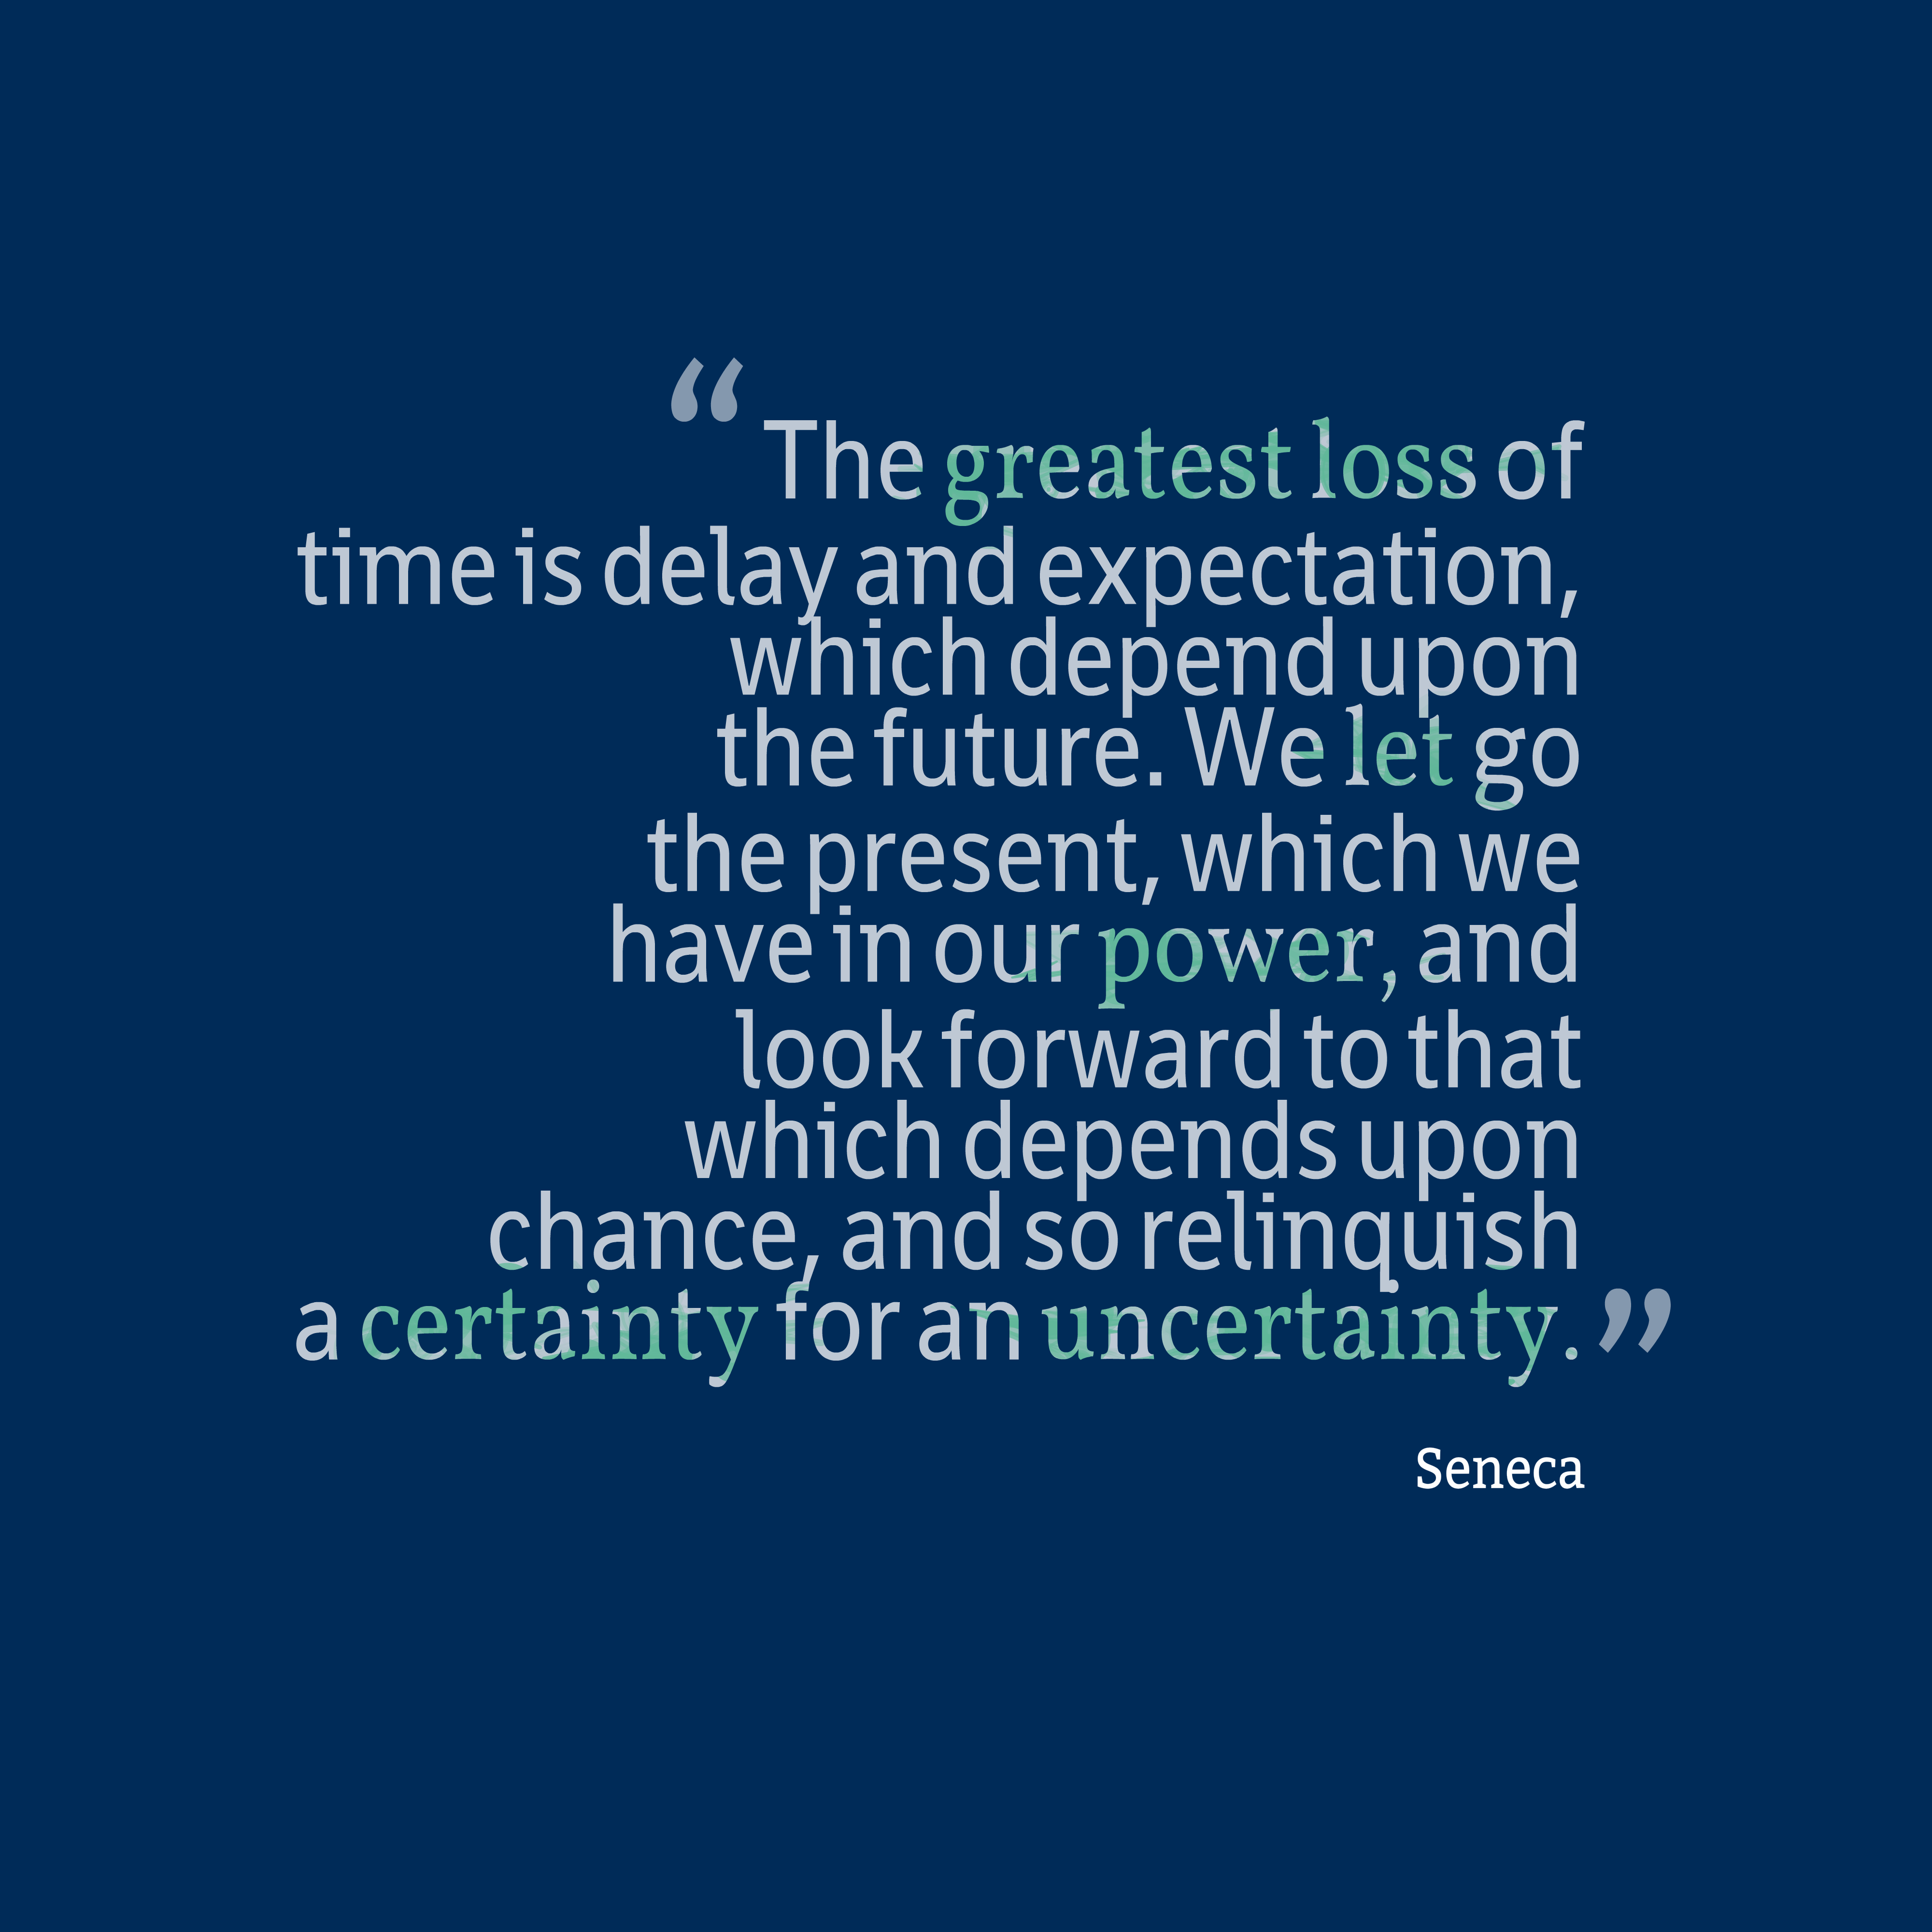 Quotes image of The greatest loss of time is delay and expectation, which depend upon the future. We let go the present, which we have in our power, and look forward to that which depends upon chance, and so relinquish a certainty for an uncertainty.